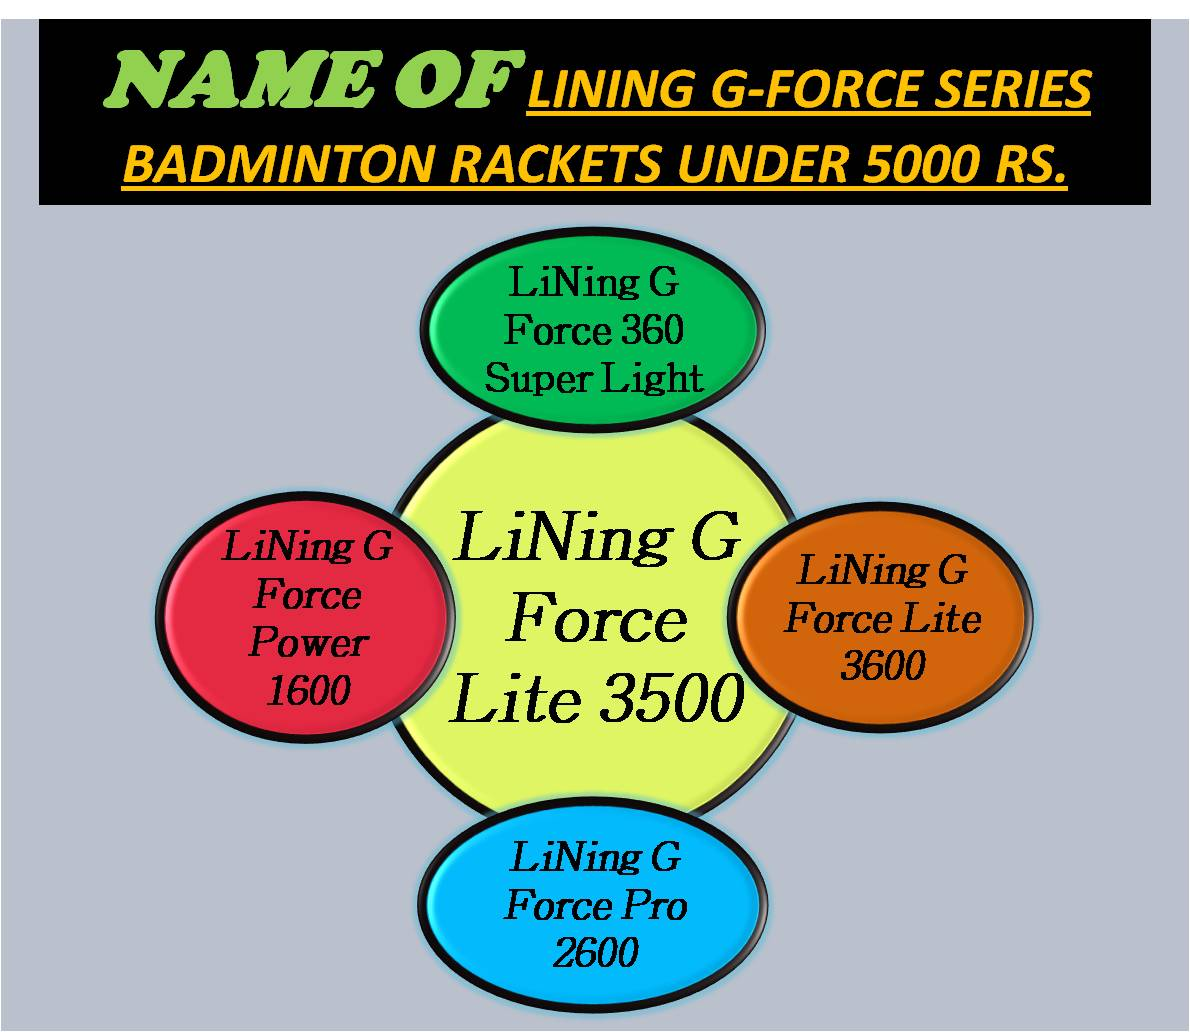 NAME OF LINING G-FORCE SERIES BADMINTON RACKETS UNDER 5000 RS